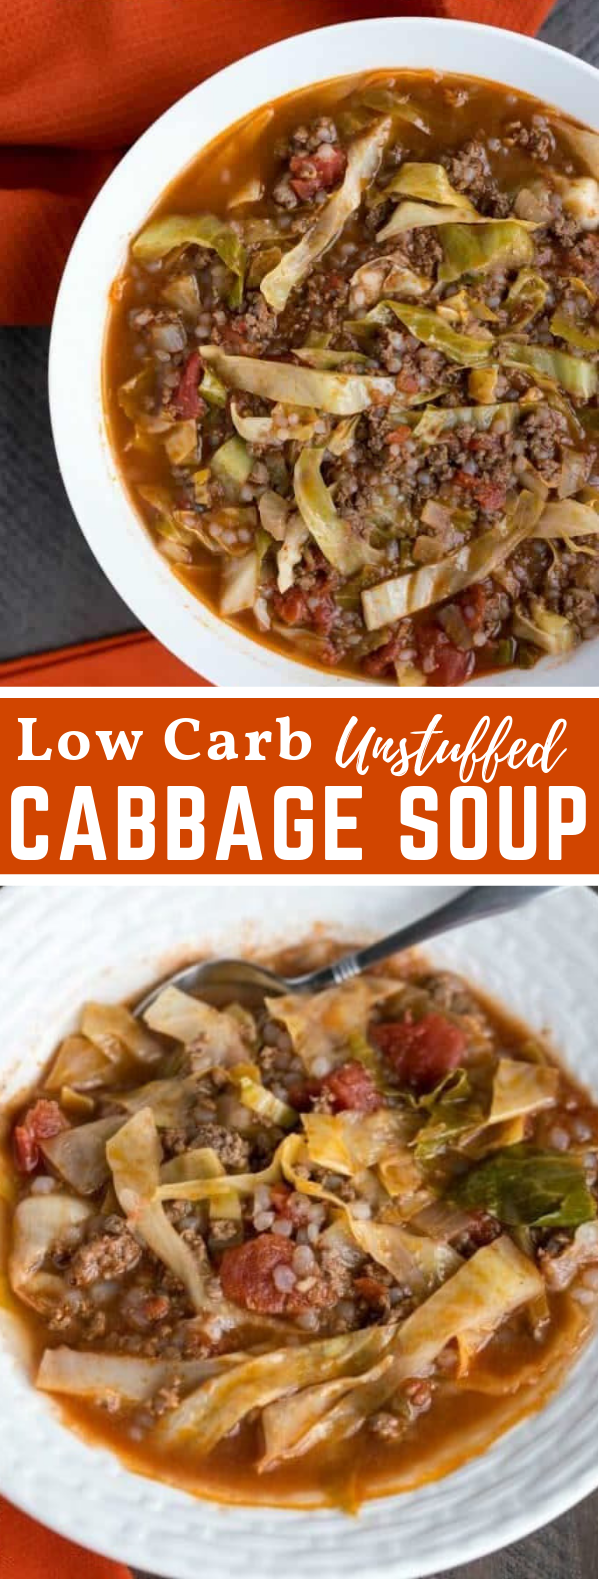 Easy Unstuffed Cabbage Soup